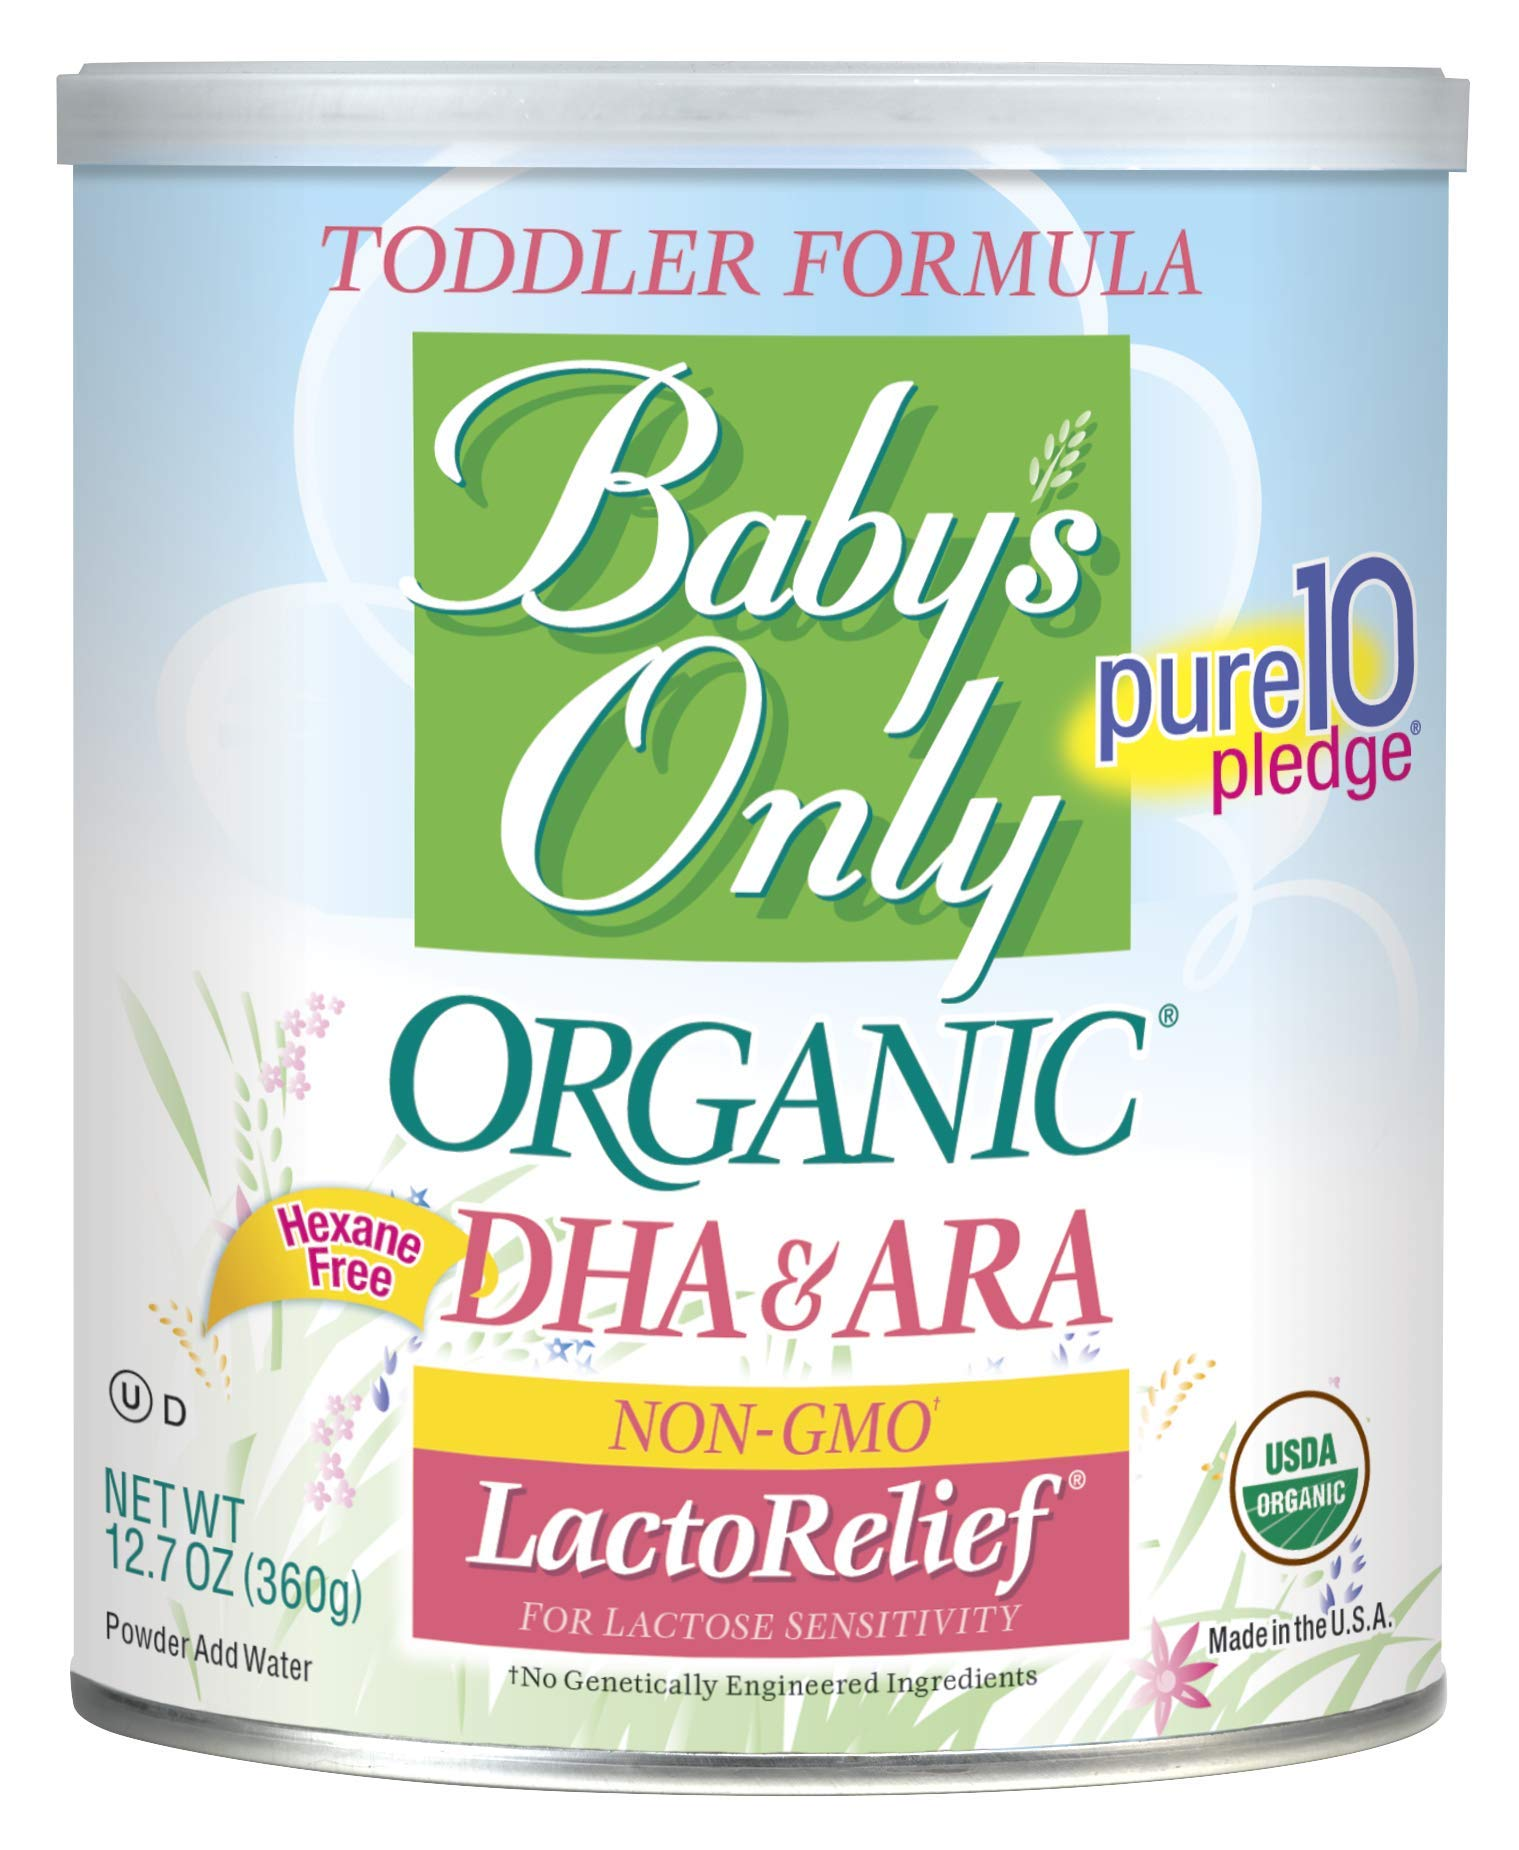 Baby's Only LactoRelief with DHA & ARA Toddler Formula - Non GMO, USDA Organic, Clean Label Project Verified, 12.7 oz (Pack of 6) by Baby's Only